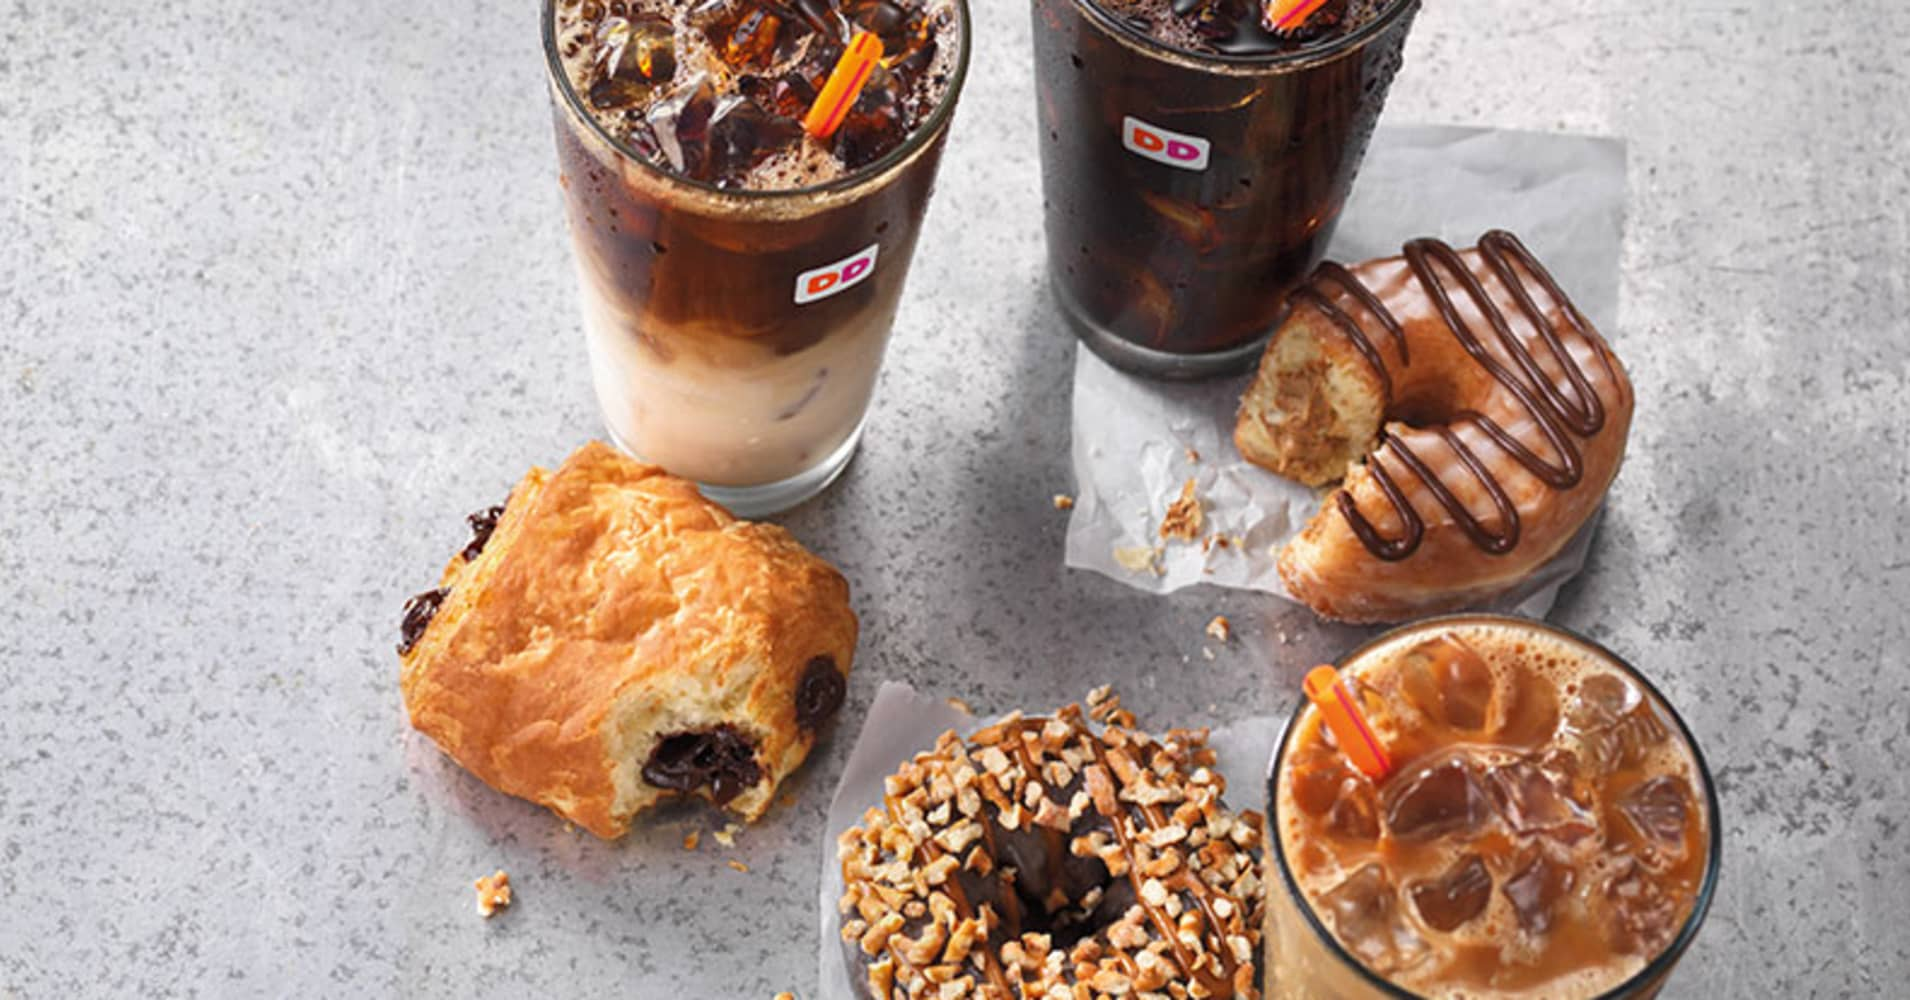 Dunkin' Donuts is ditching the Coffee Coolatta